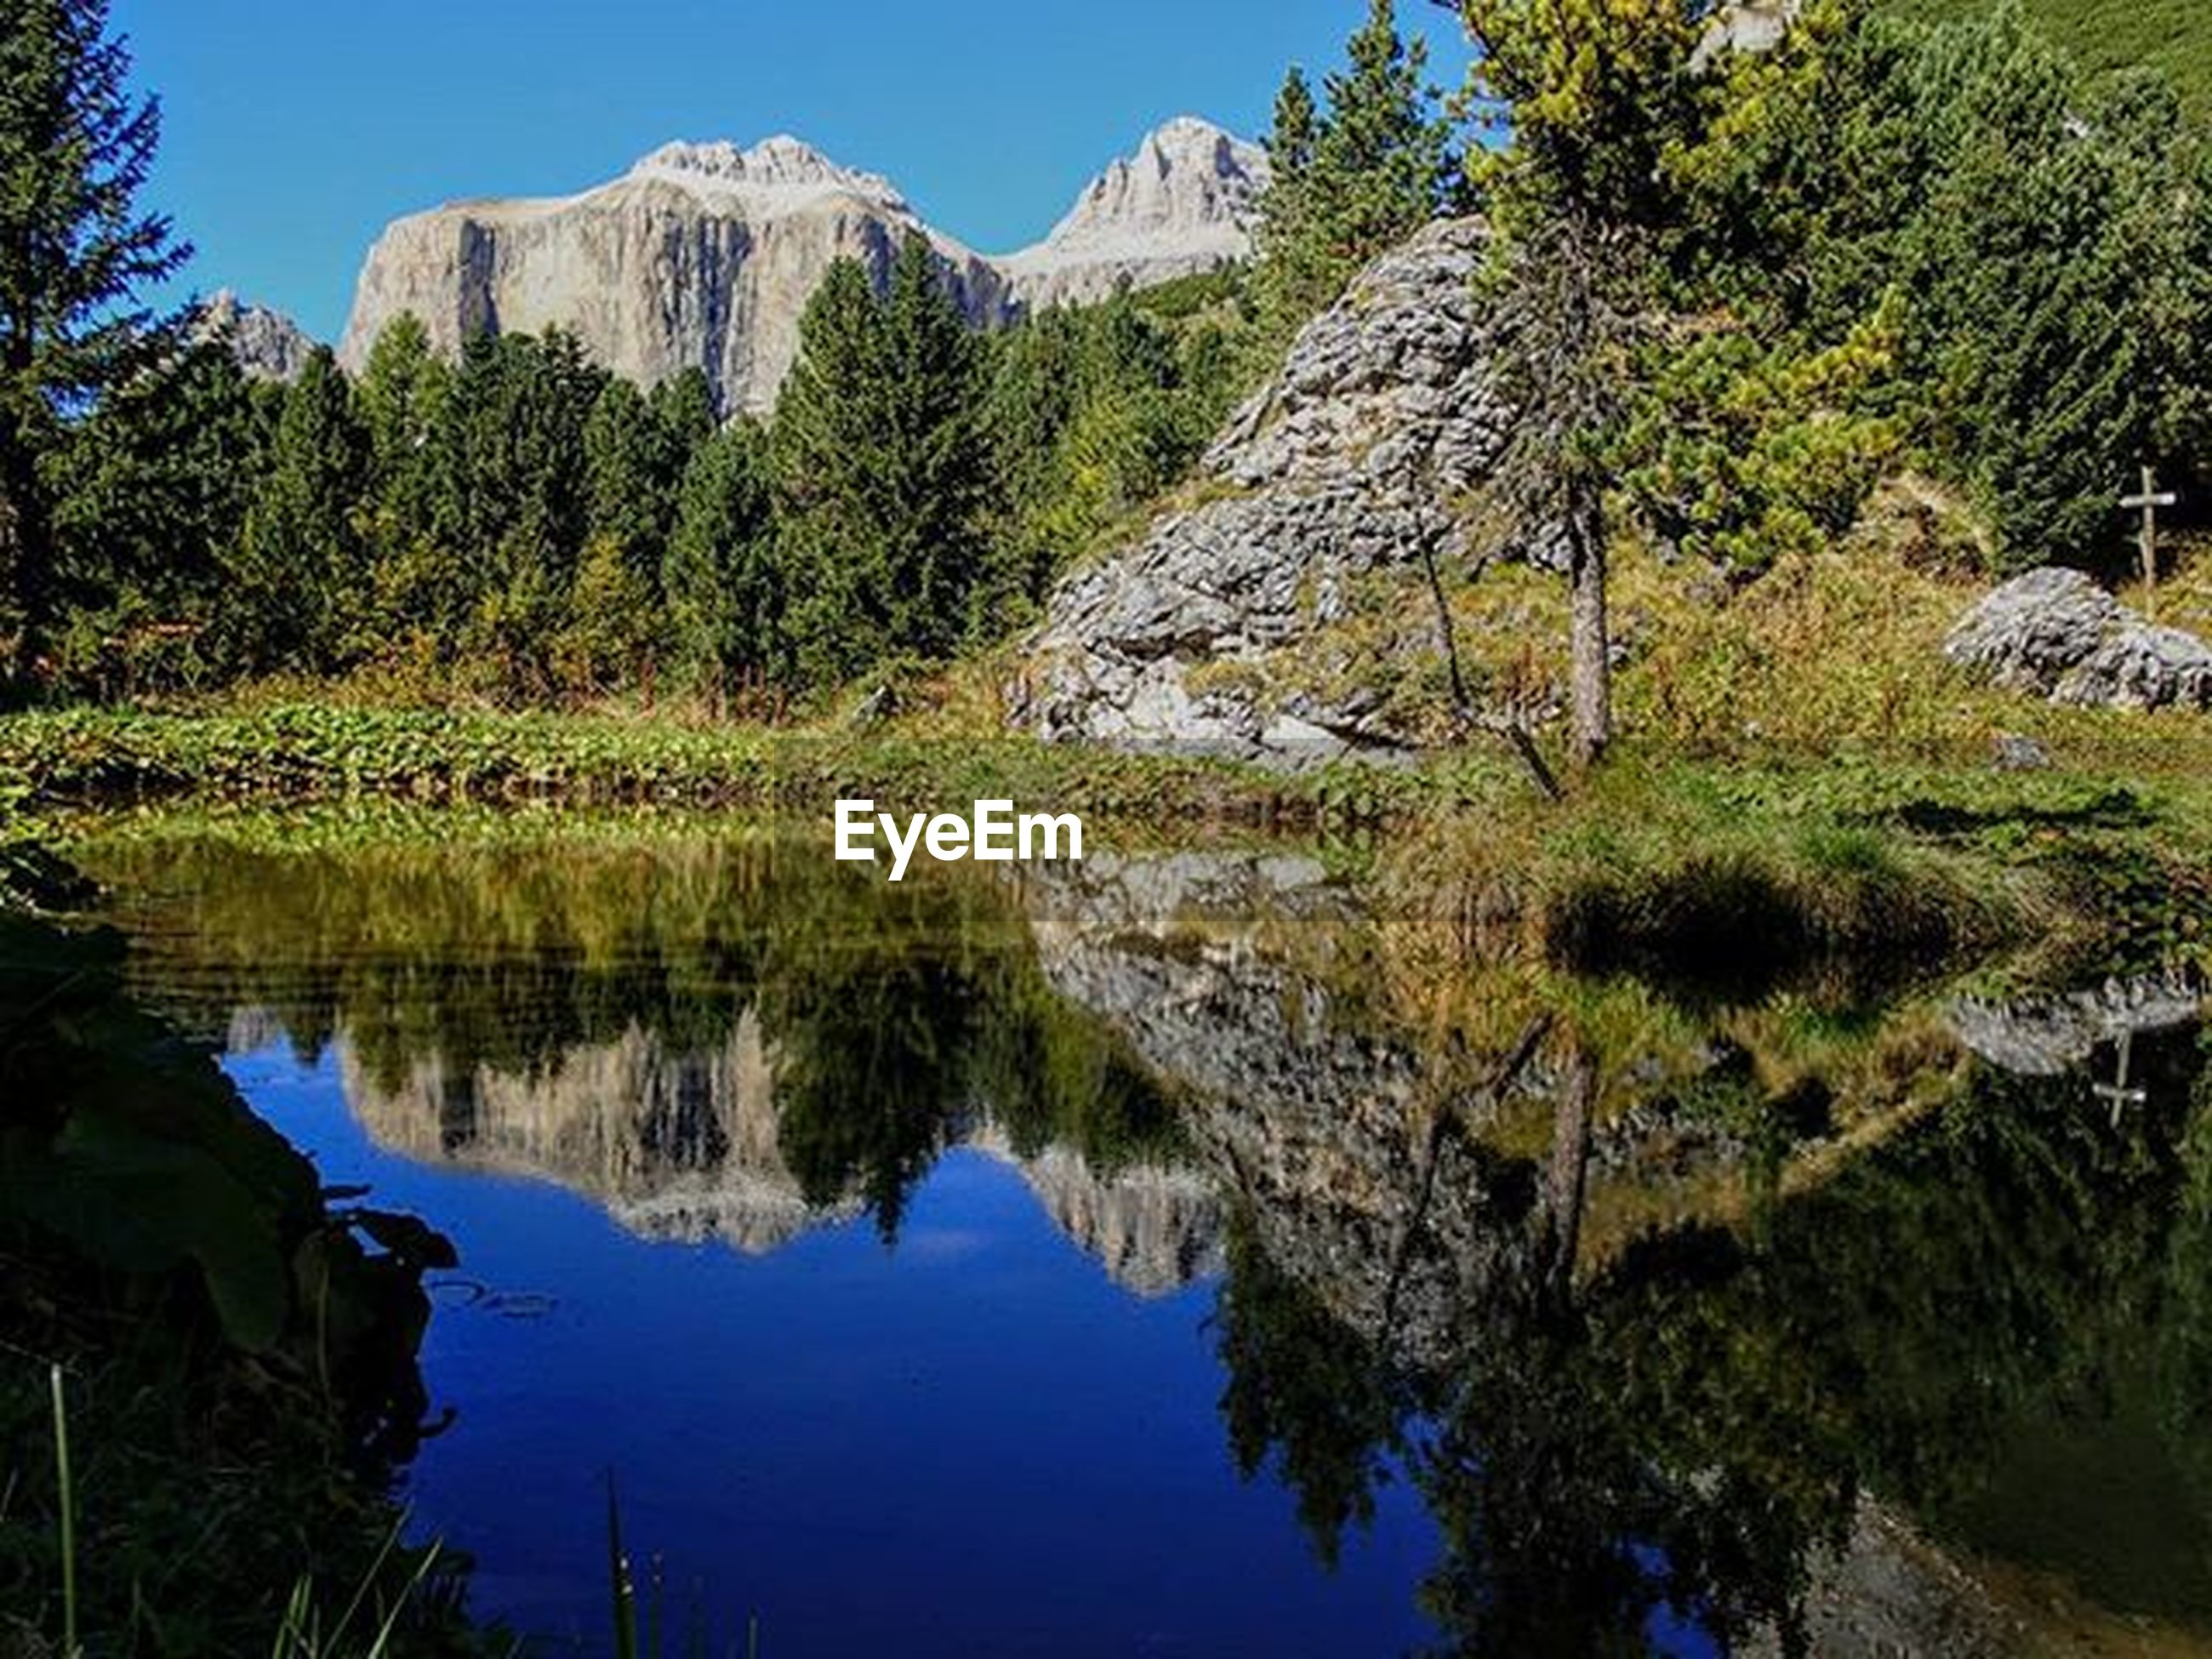 water, tranquil scene, tranquility, mountain, reflection, tree, scenics, beauty in nature, lake, nature, clear sky, idyllic, river, blue, non-urban scene, standing water, mountain range, rock - object, day, sunlight